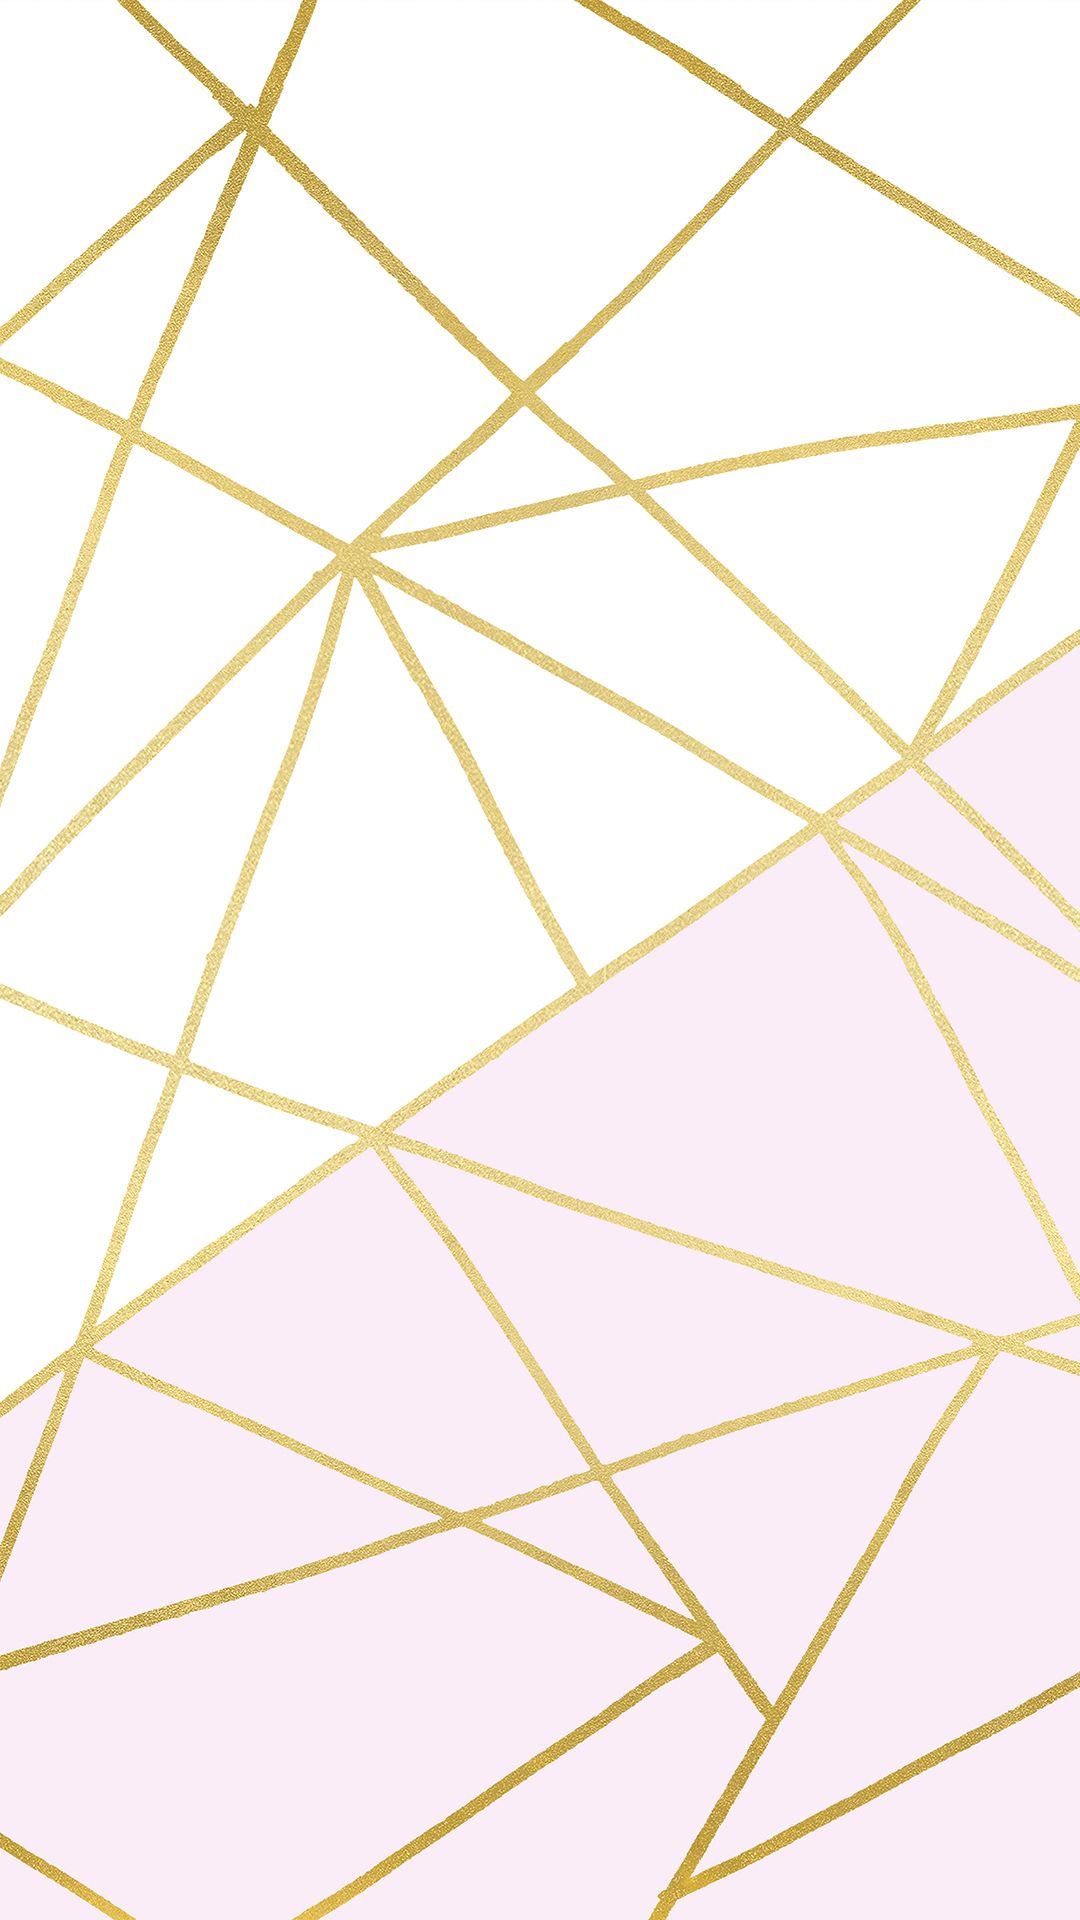 Pink White And Gold Geometric Wallpaper By Linesacross Jpg